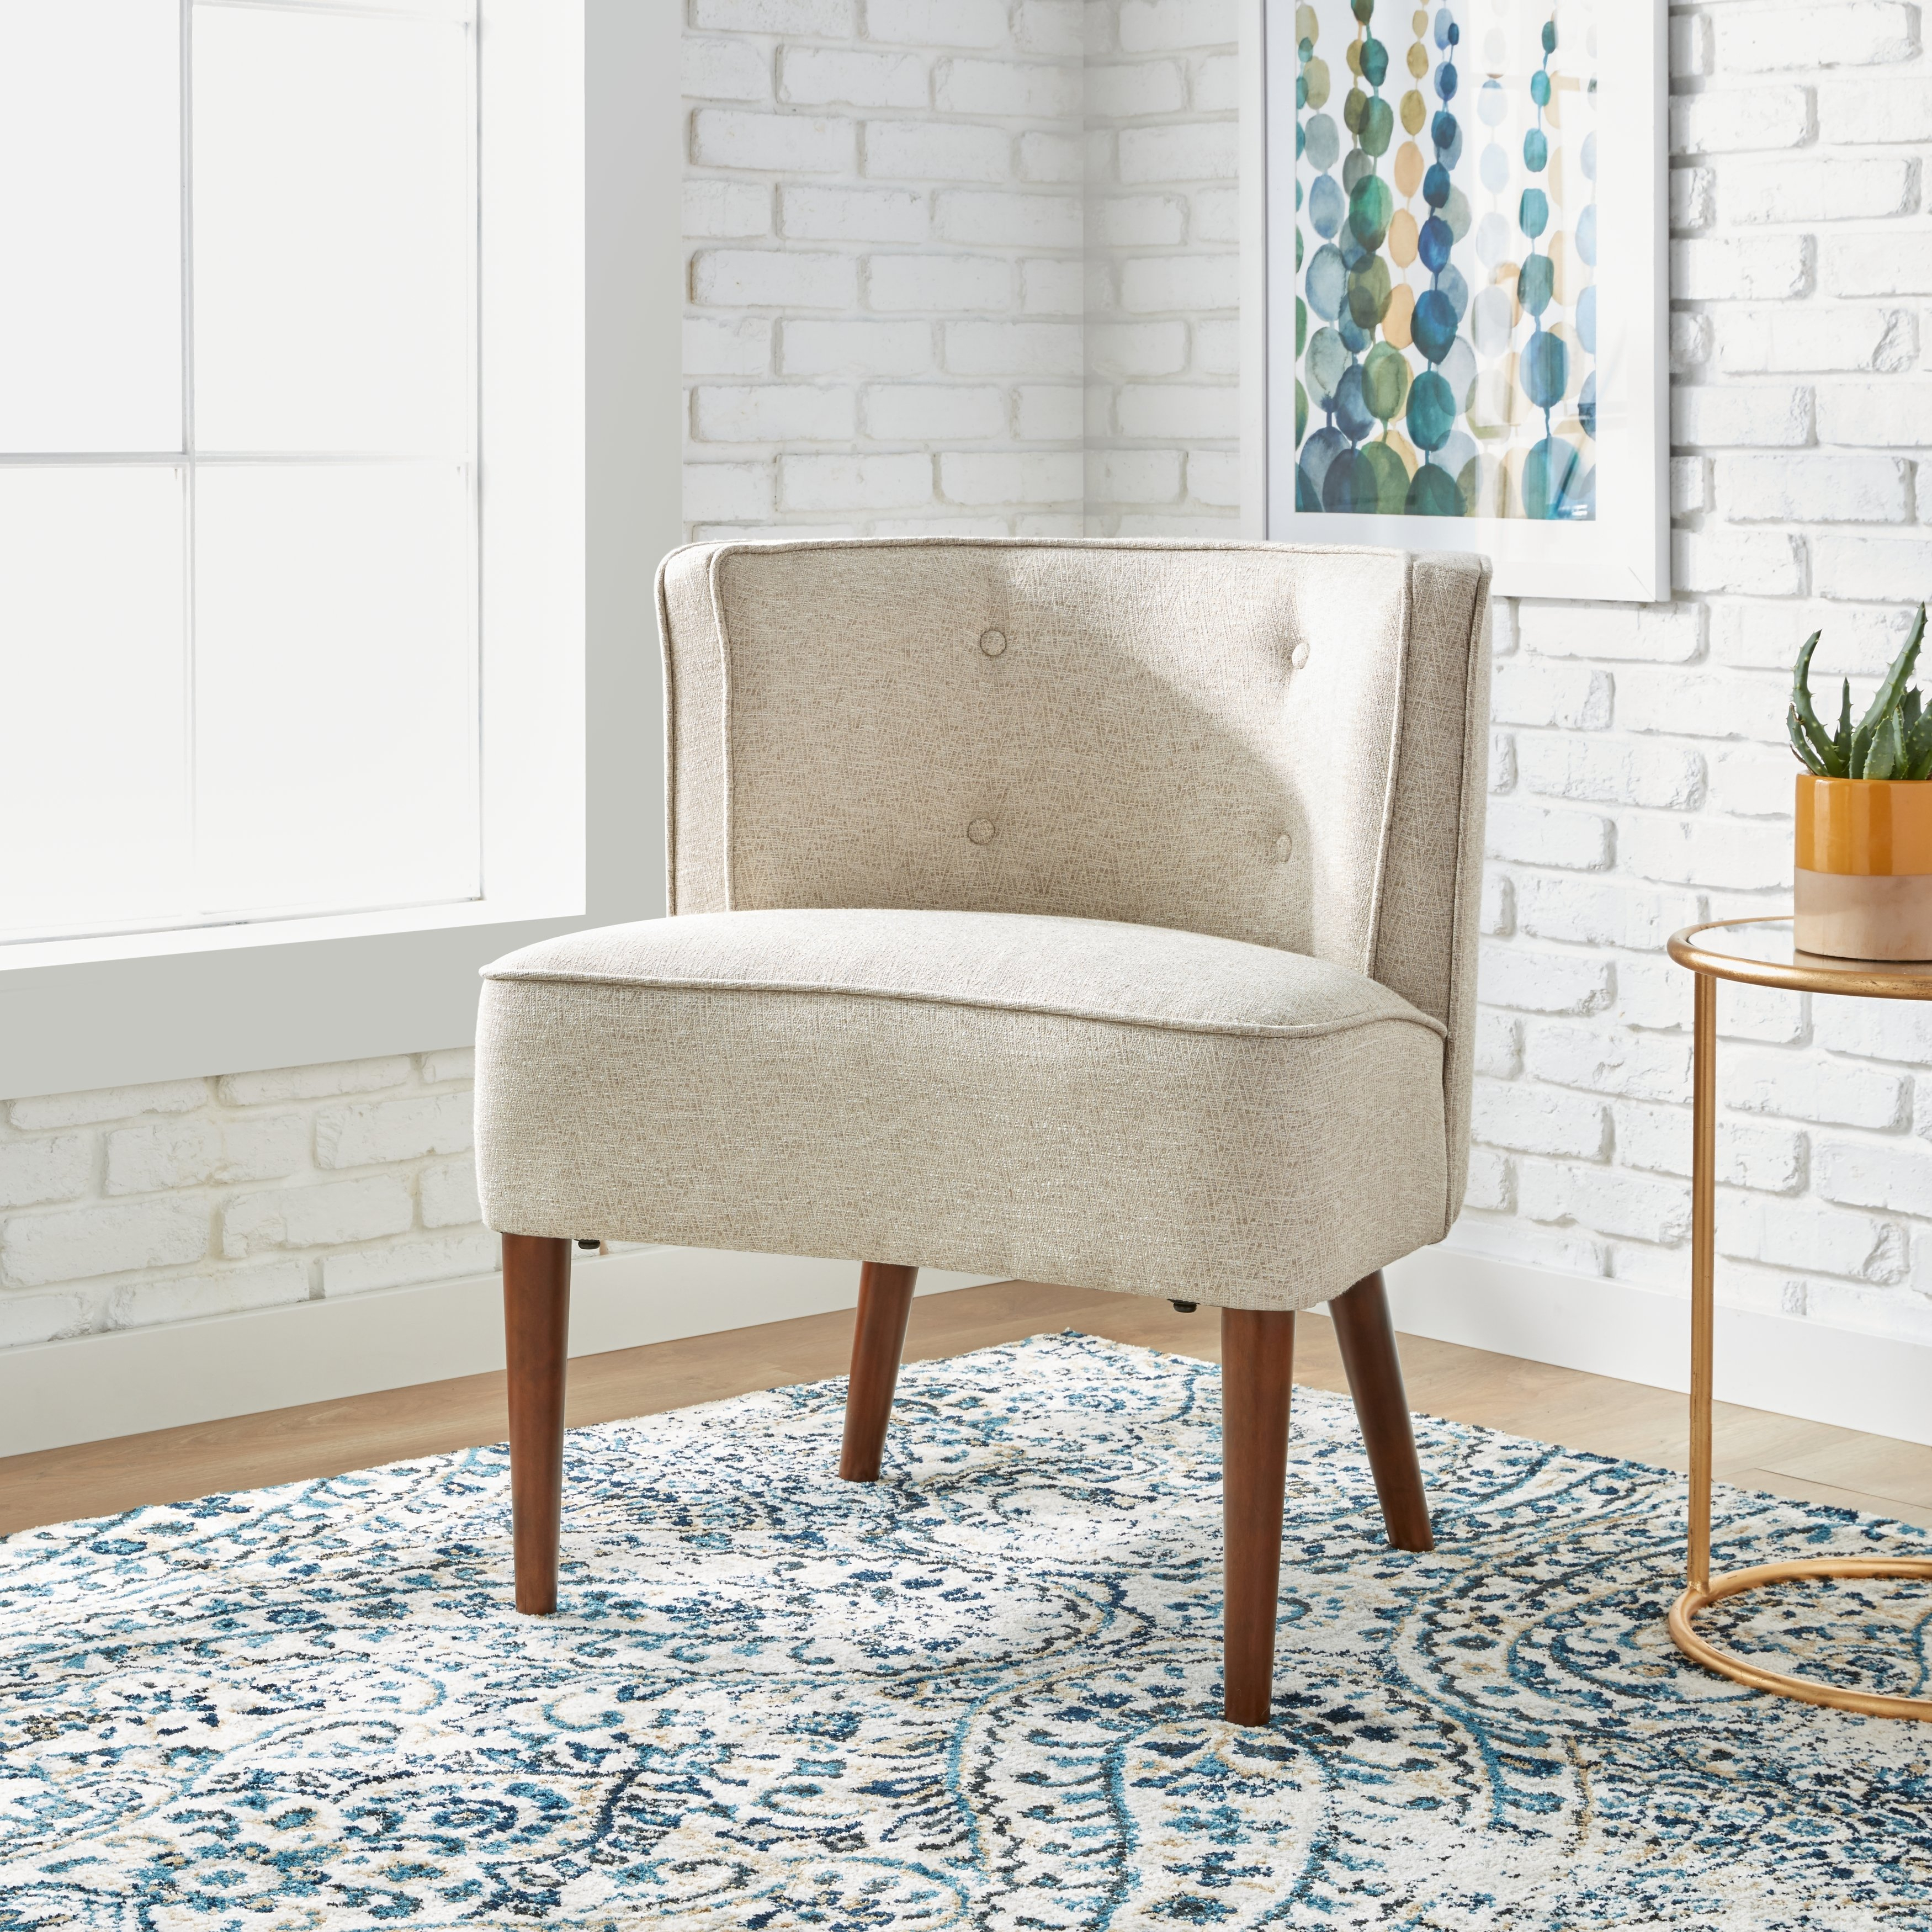 Shop Maison Rouge Sierra Off White Accent Chair – Free Shipping Throughout Sierra Foam Ii Oversized Sofa Chairs (View 20 of 25)